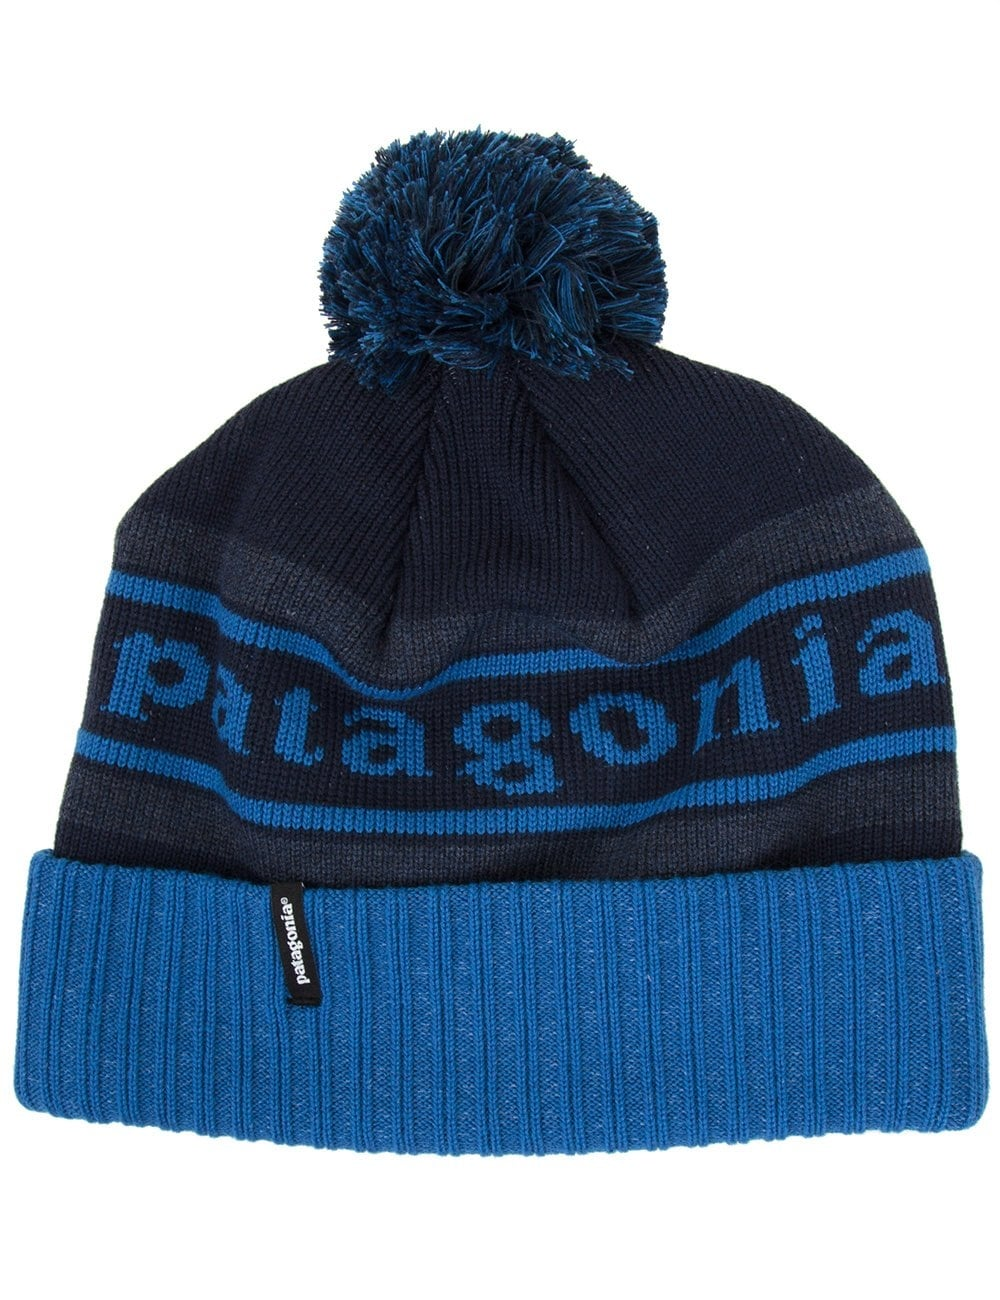 c1f5e6245ad Patagonia Powder Town Beanie - Glass Blue - Accessories from Fat ...